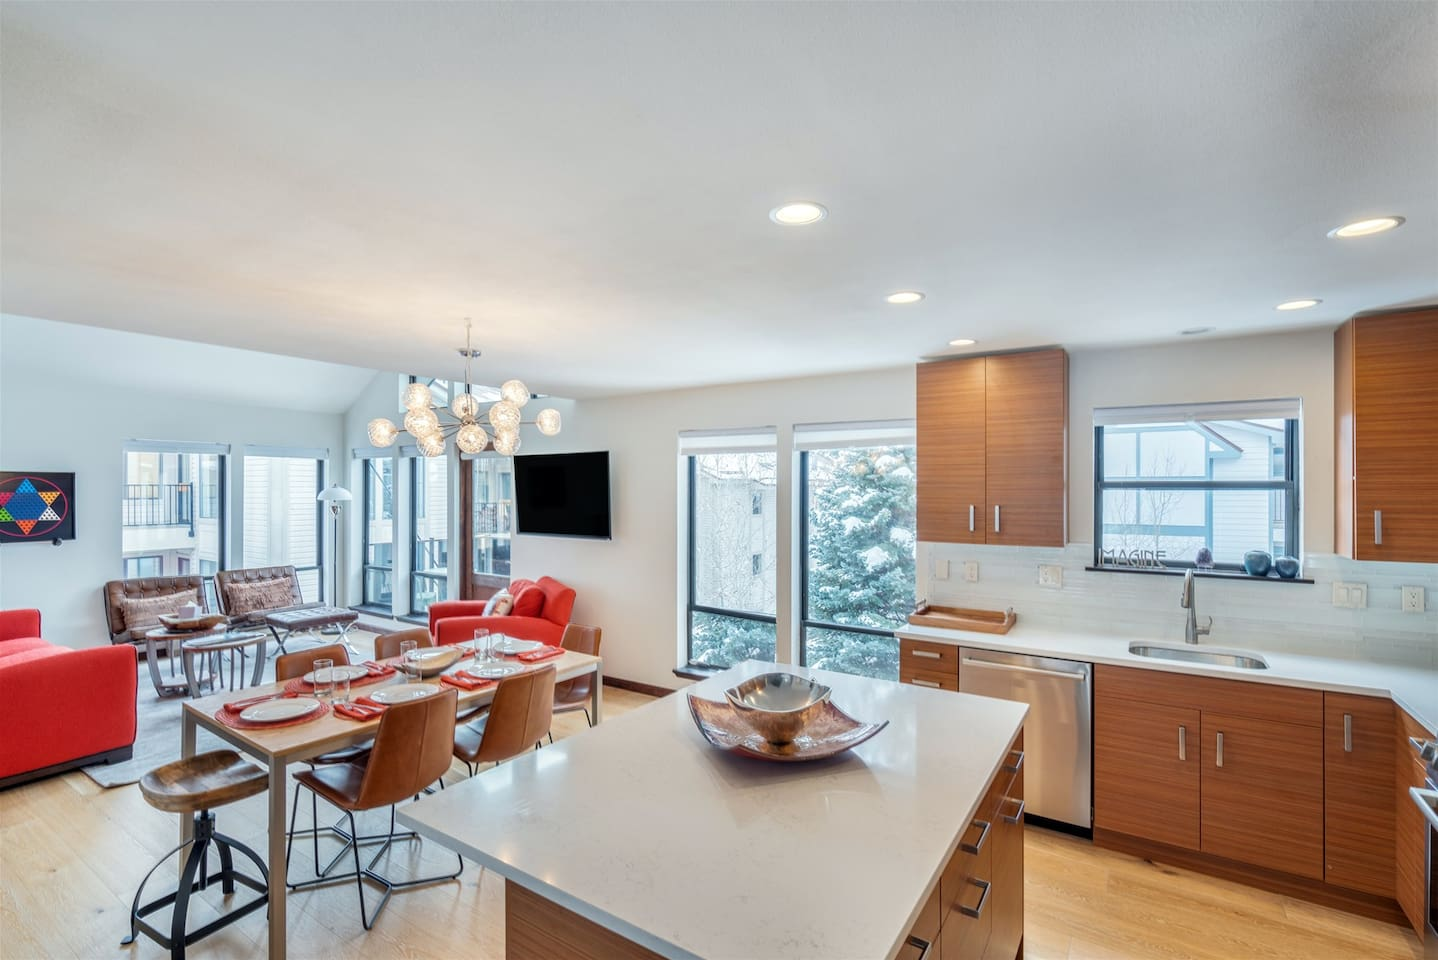 The open concept floor plan flows into the living room and pulls in the views outside